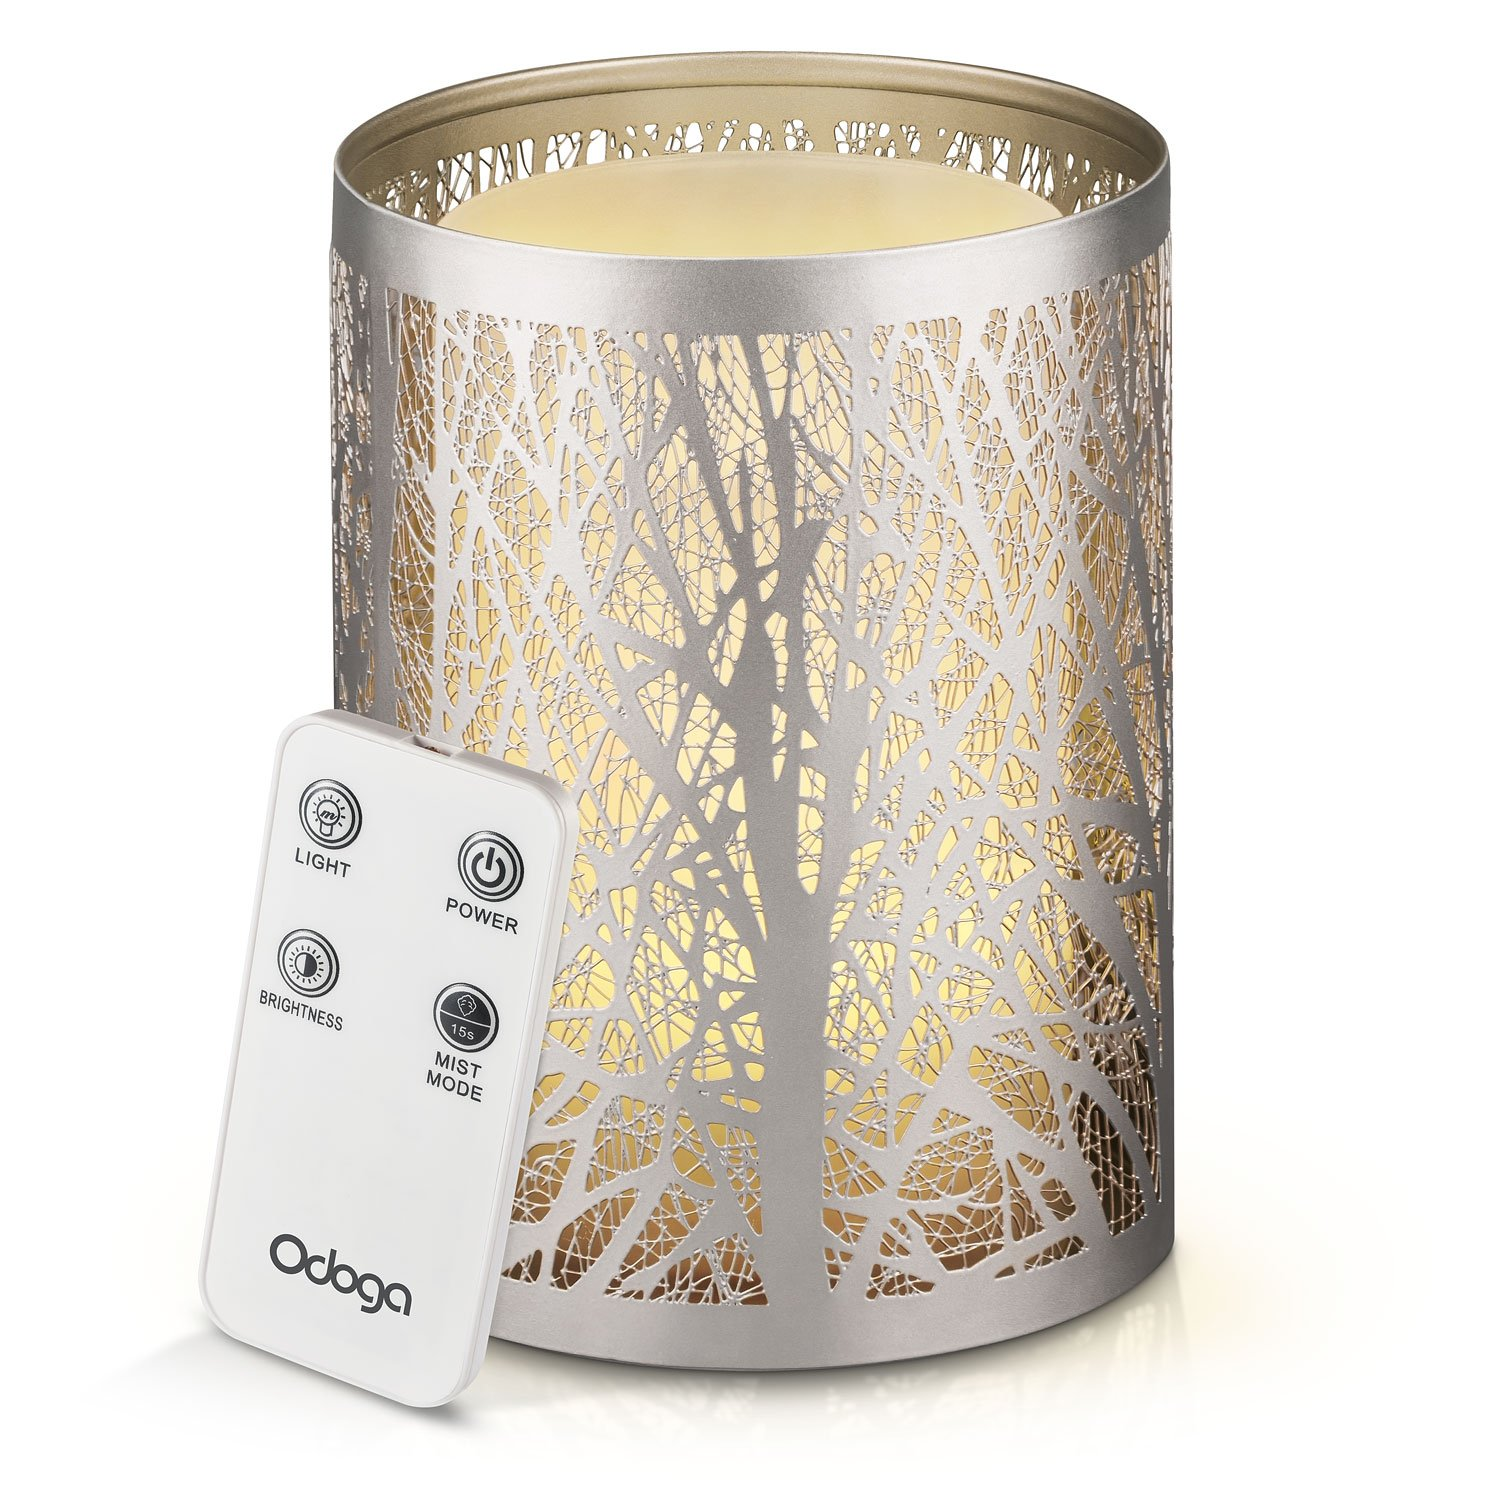 Odoga Aromatherapy Essential Oil Diffuser, 100 ml Ultrasonic Whisper Quiet Cool Mist Humidifier Warm White Color Candle Light Effect, Low Water Auto Shut-Off & Remote Control Oak